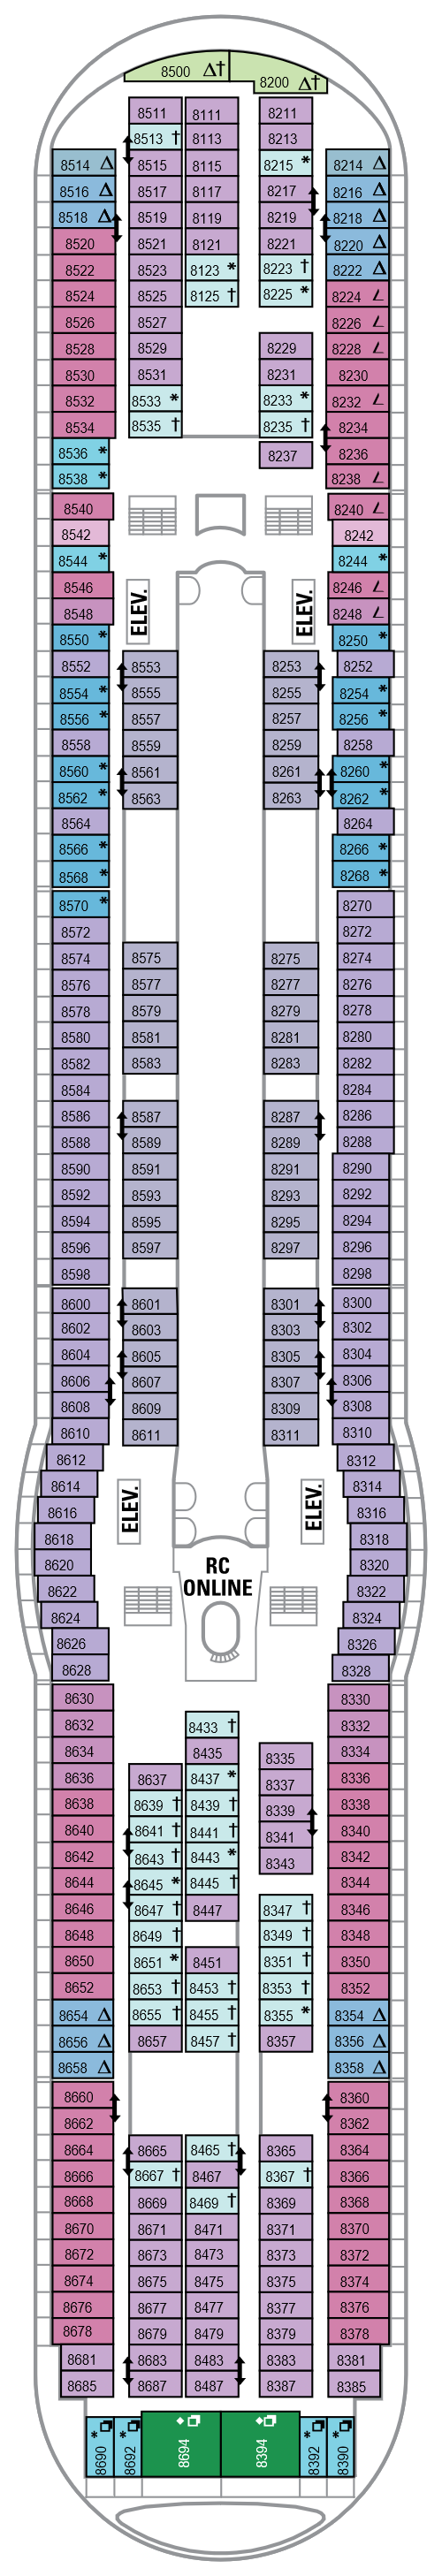 Explorer Of The Seas Deck 8 layout